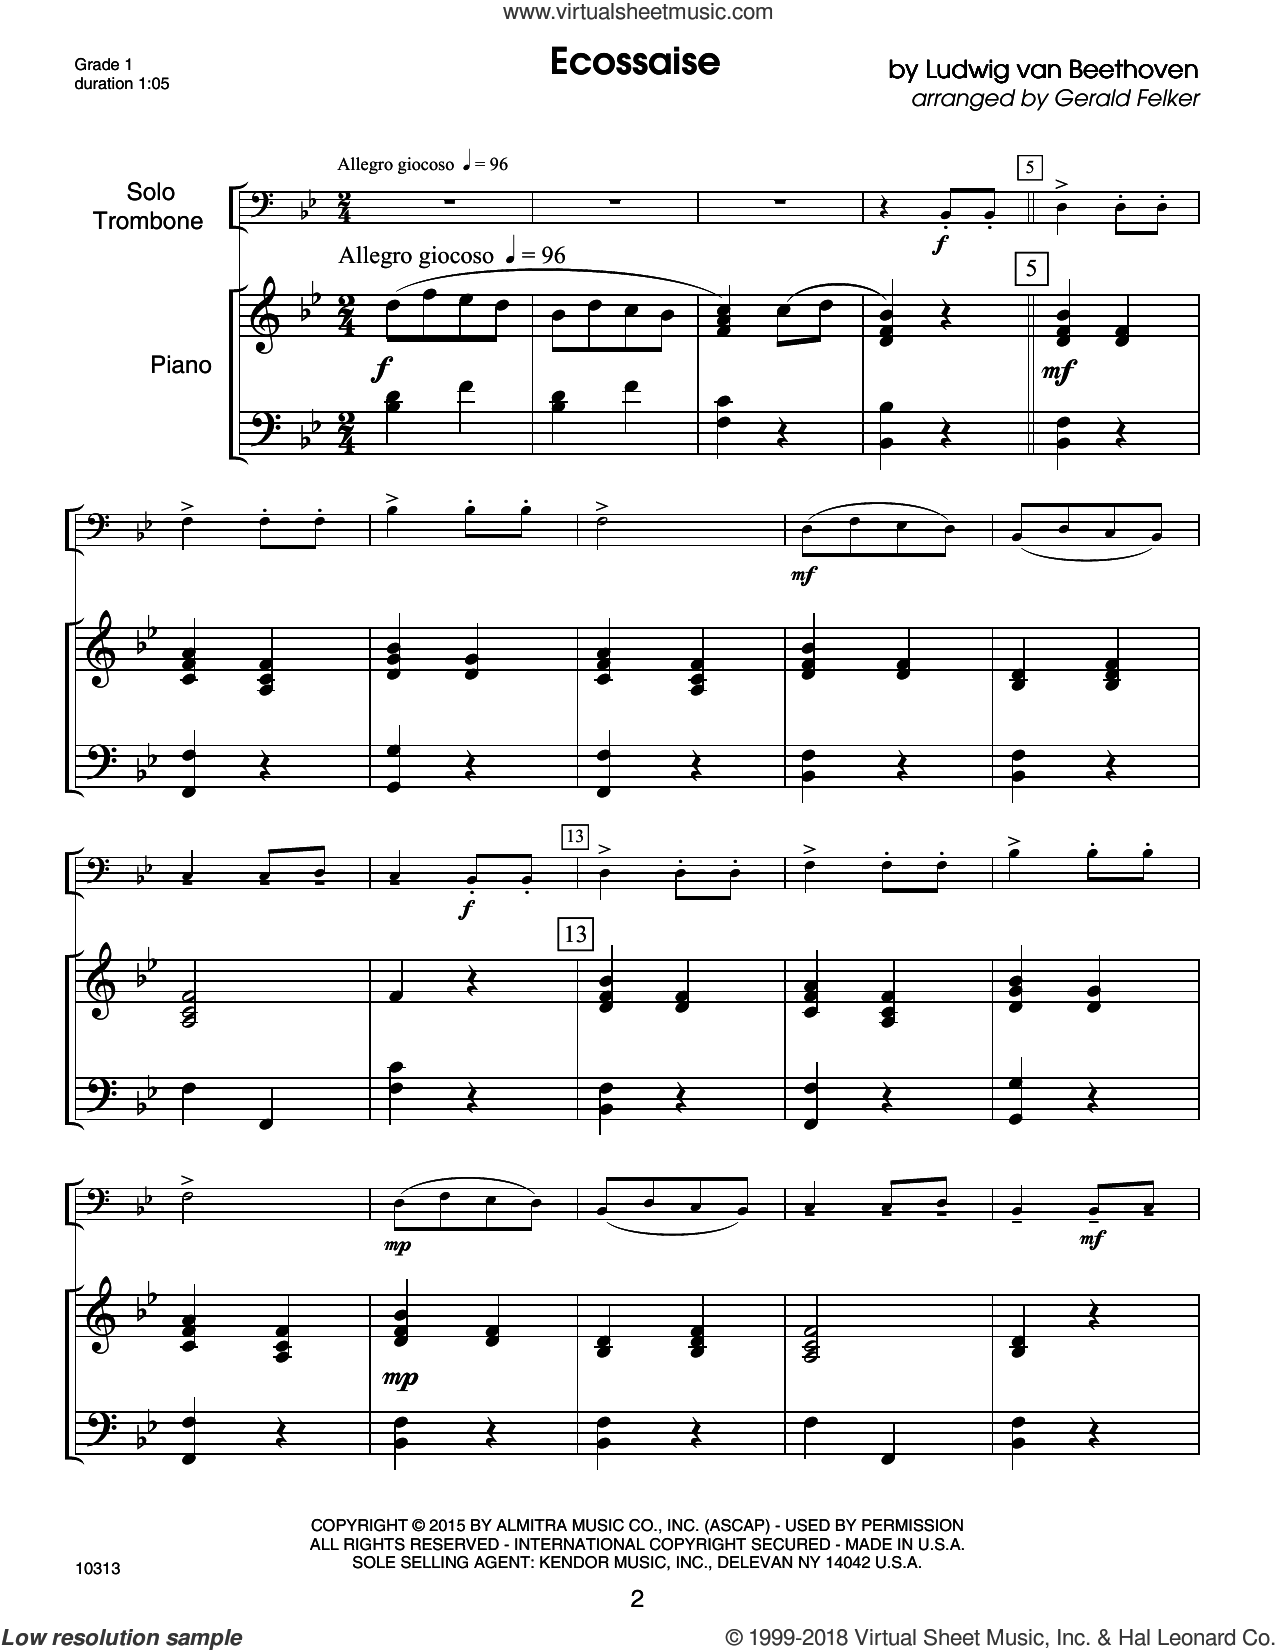 Kendor Debut Solos - Trombone - Piano Accompaniment sheet music for trombone and piano by Gerald Felker and Miscellaneous. Score Image Preview.